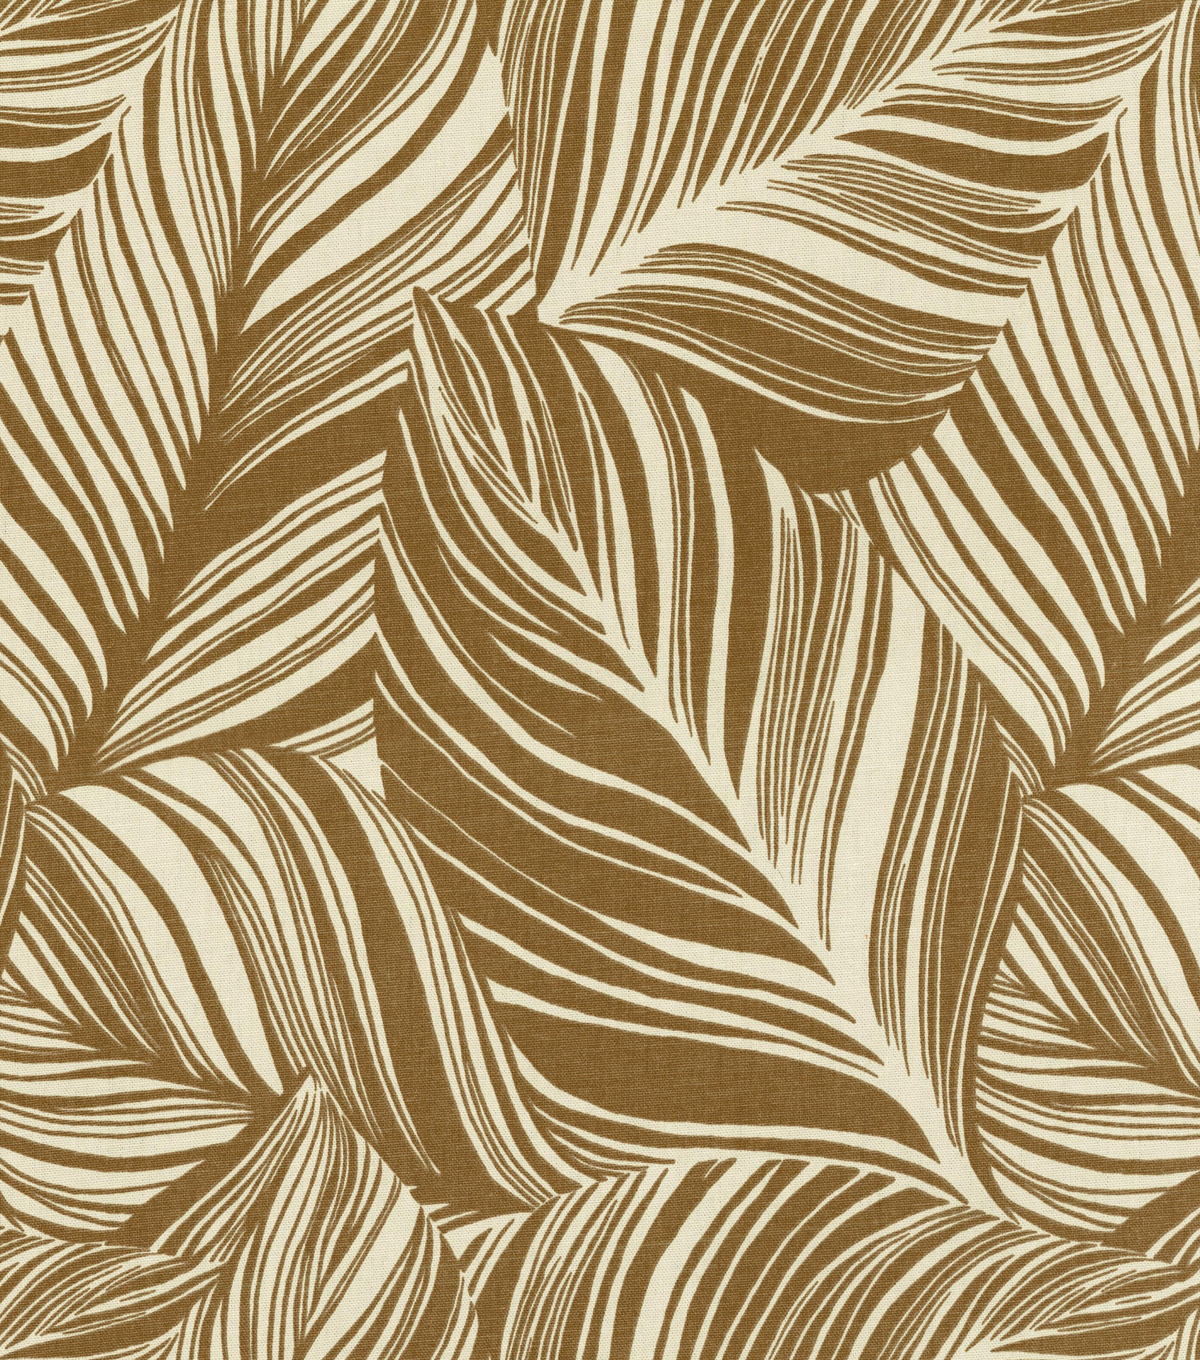 Home Decor 8\u0022x8\u0022 Fabric Swatch-Tommy Bahama Fantasy Foilage Nutmeg